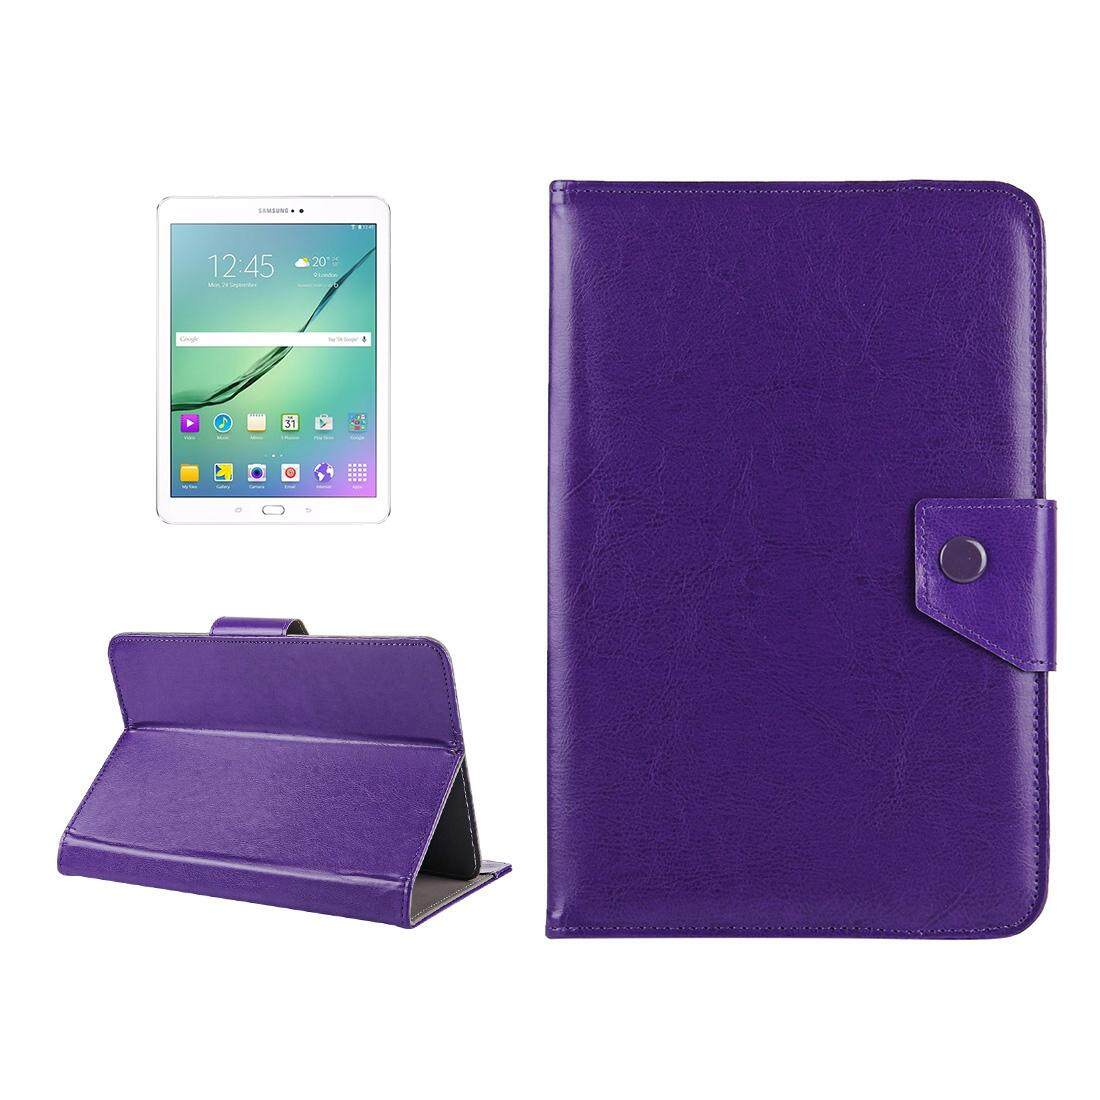 10 inch Tablets Leather Case Crazy Horse Texture Protective Case Shell with Holder for Asus ZenPad 10 Z300C, Huawei MediaPad M2 10.0-A01W, Cube IWORK10(Purple) - intl